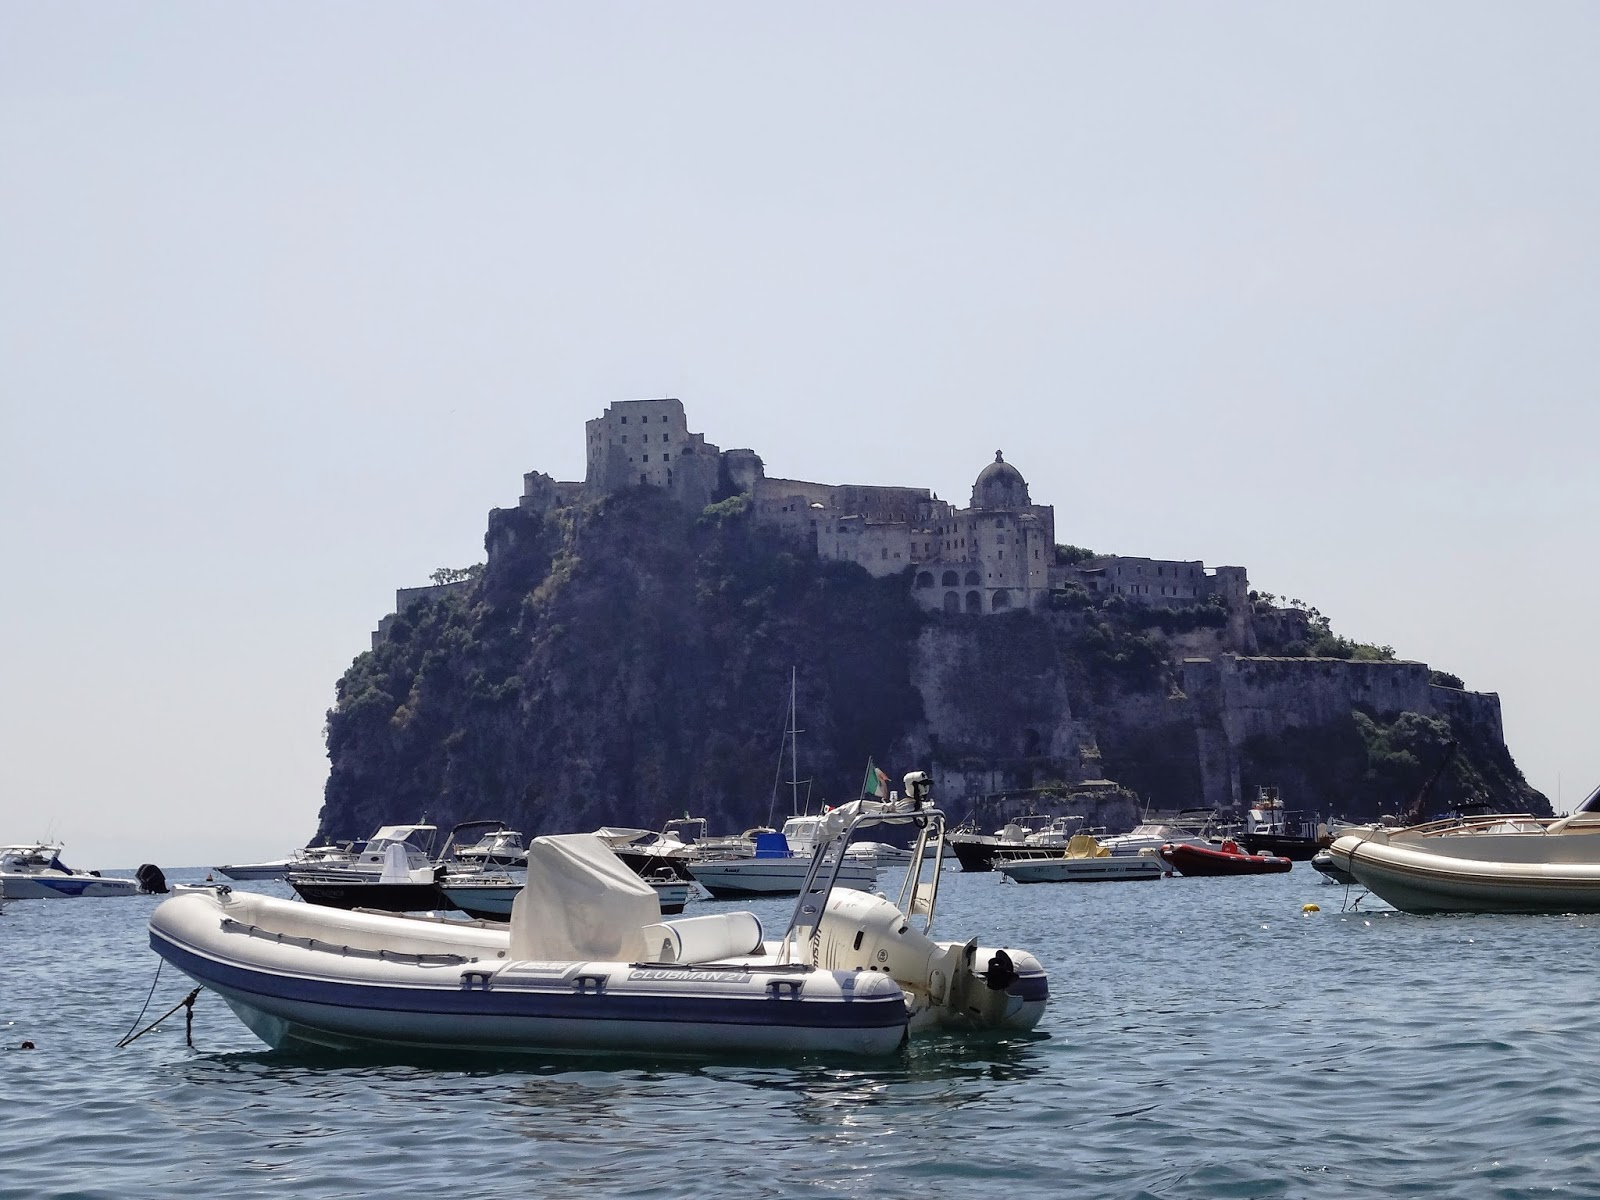 Castle Aragonese on Ischia